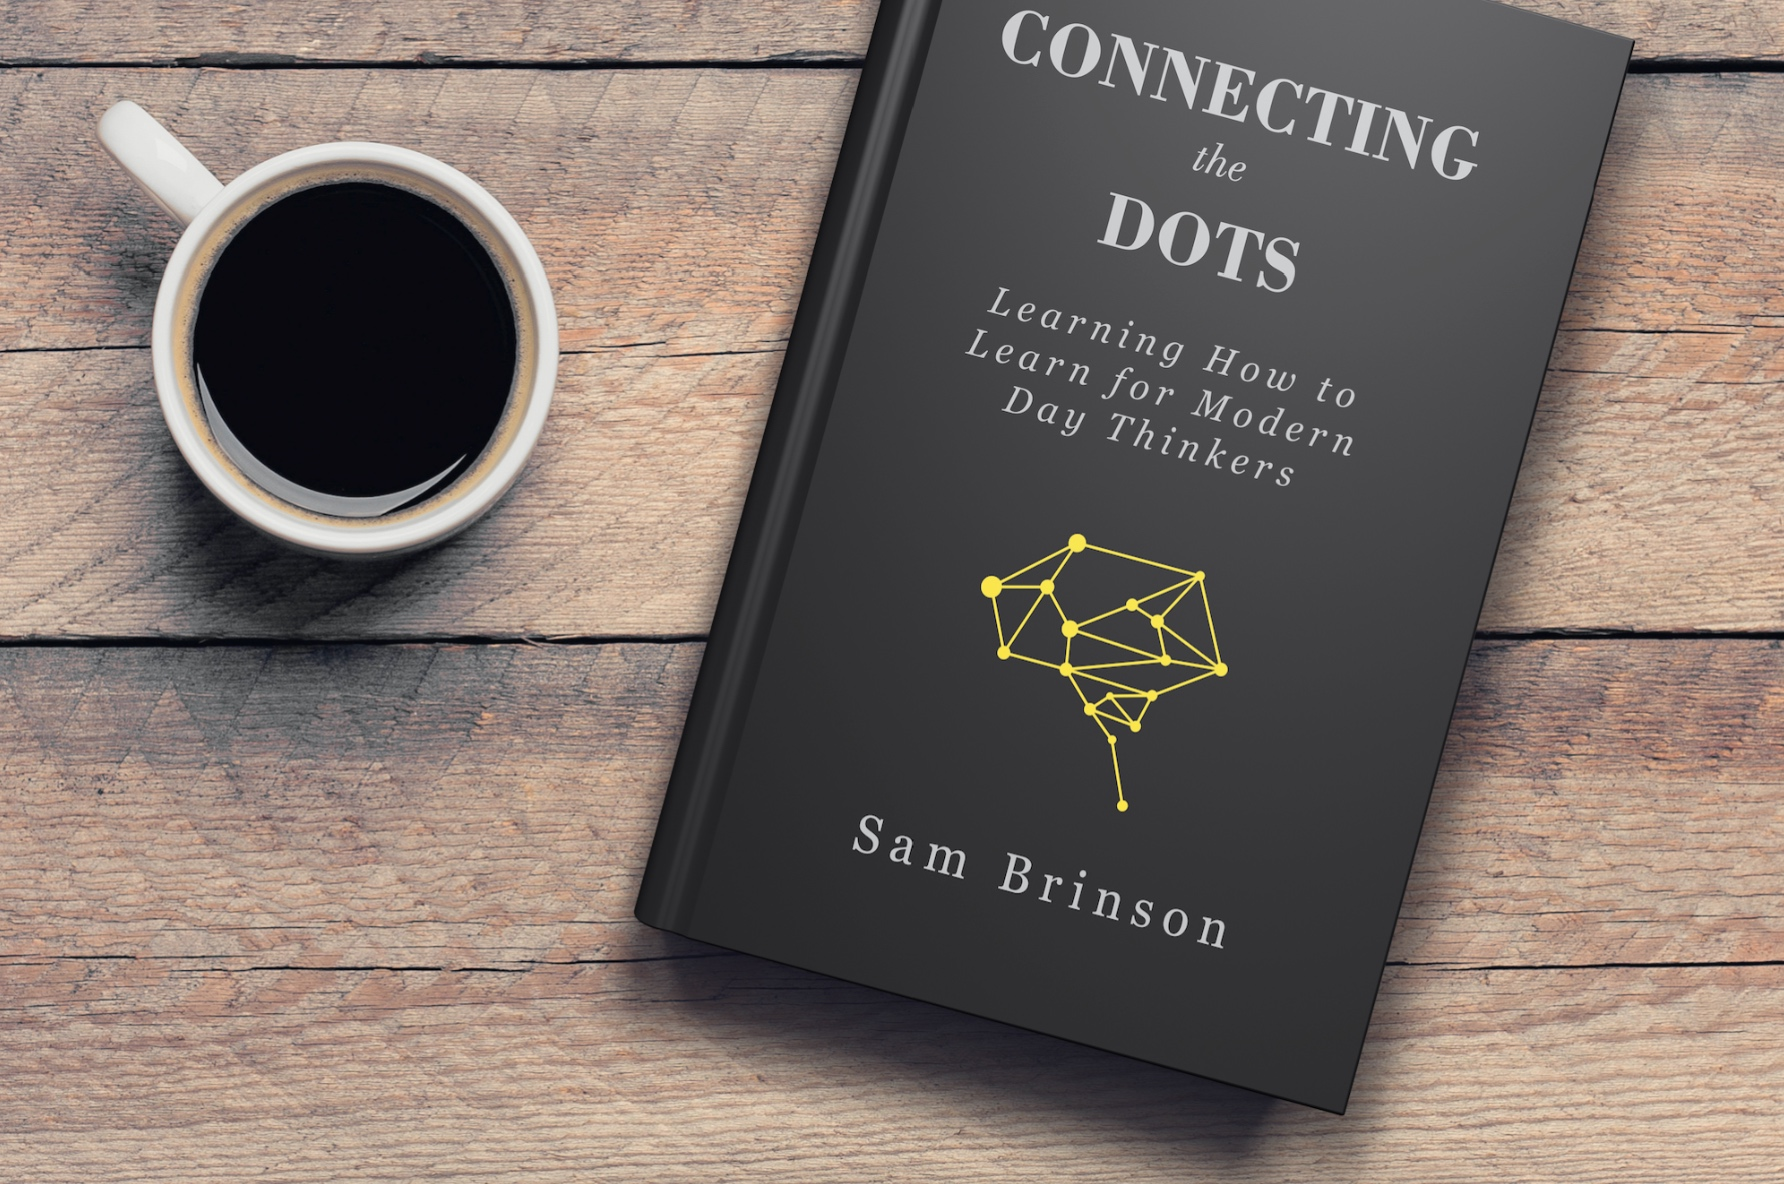 Connecting The Dots: Learning How To Learn For Modern Day